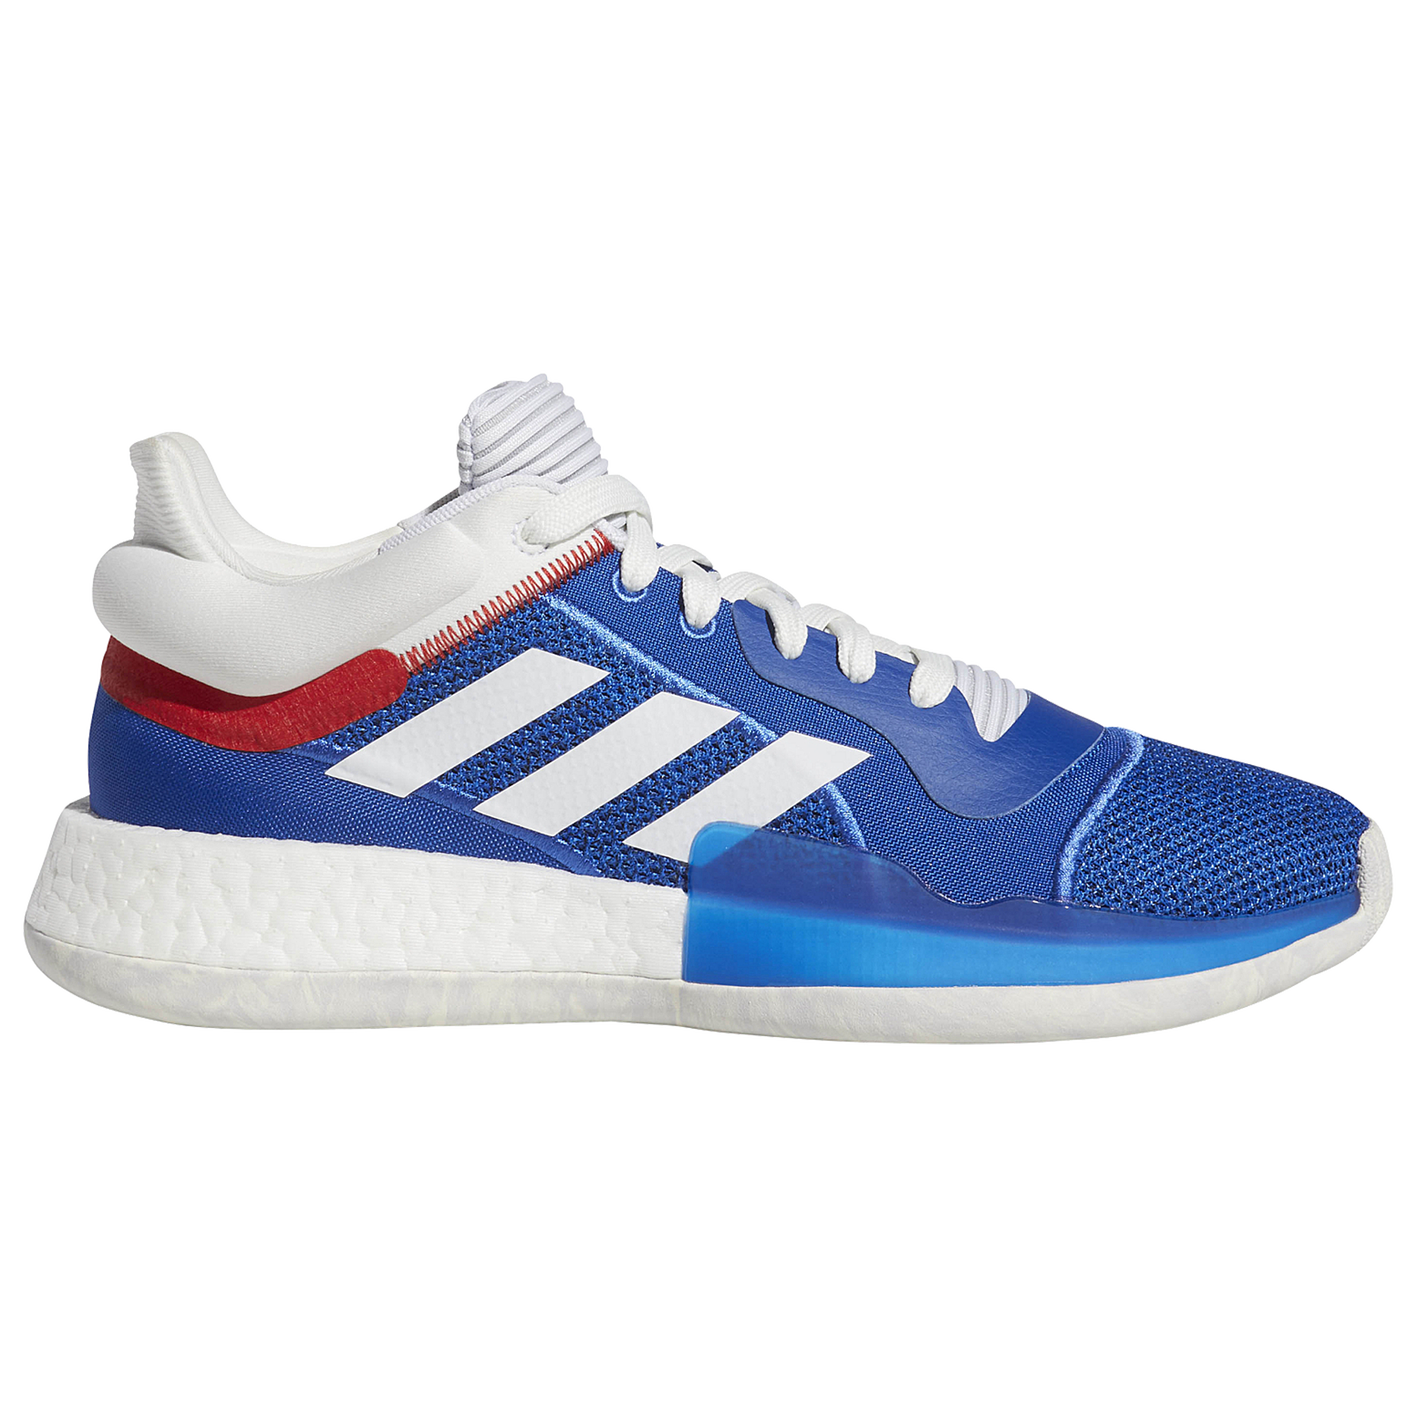 adidas Marquee Boost Low - Men s - Basketball - Shoes - Collegiate ... ac630d7f0